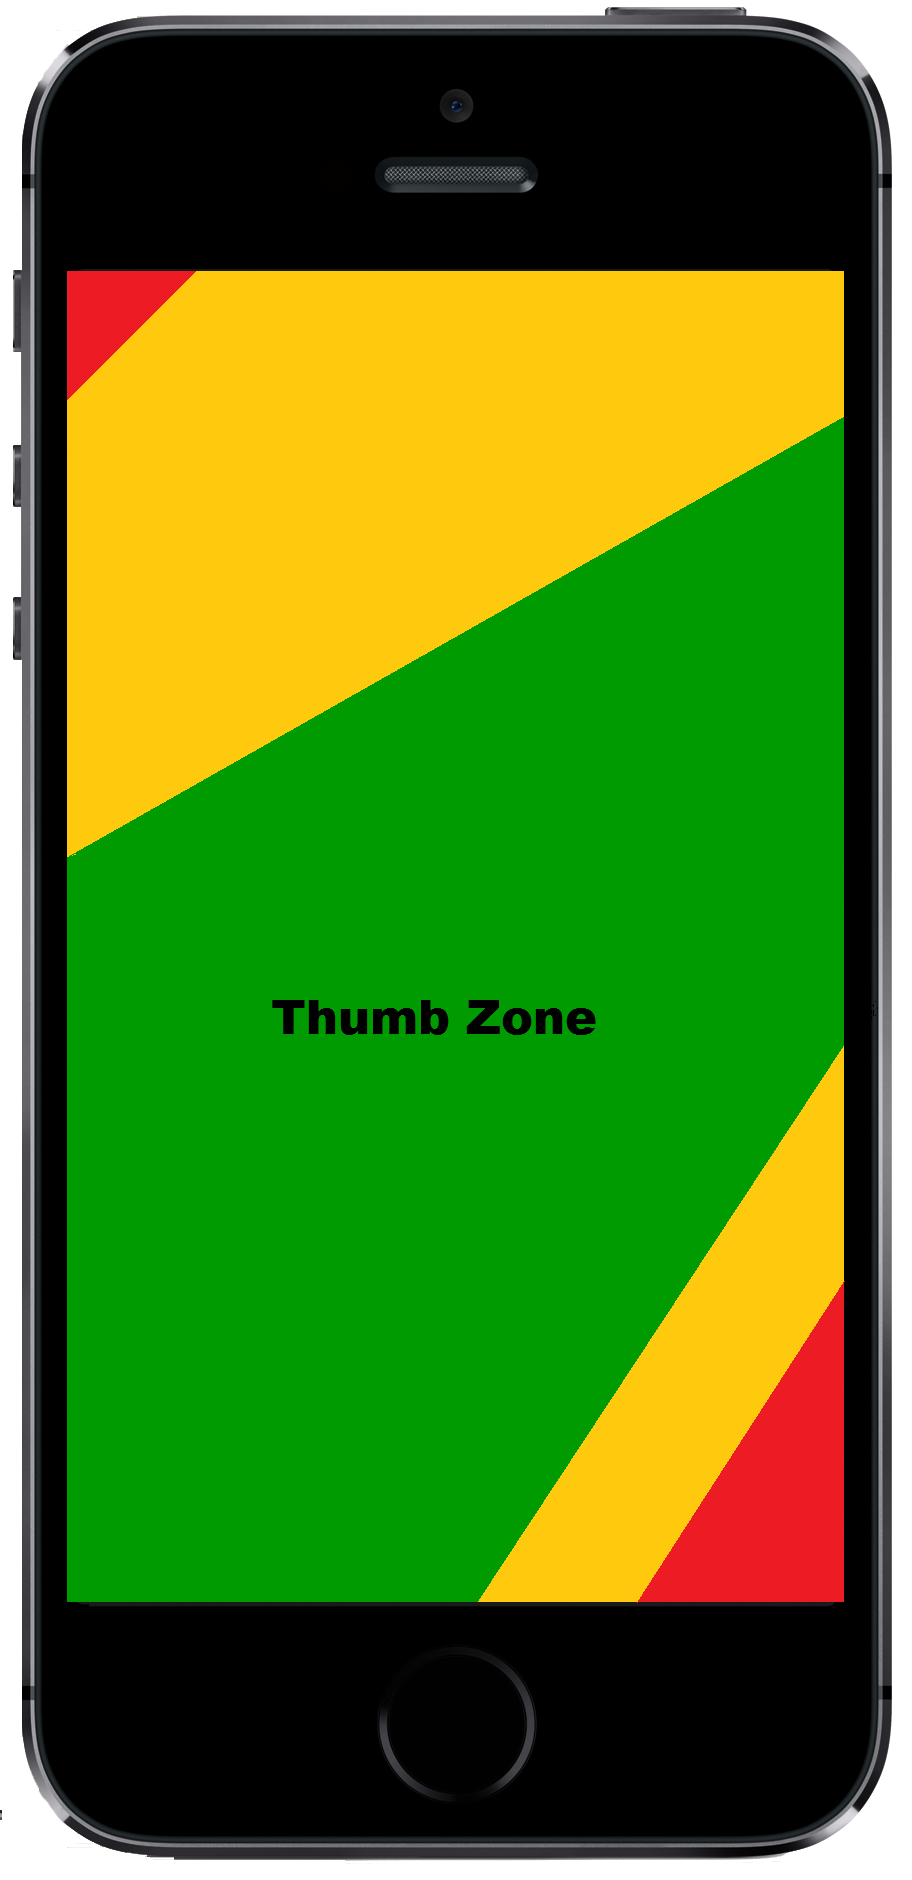 """The Thumb Zone"" of a mobile phone (based on the image by Oliver McGough in ""Designing for Thumbs – The Thumb Zone"")"